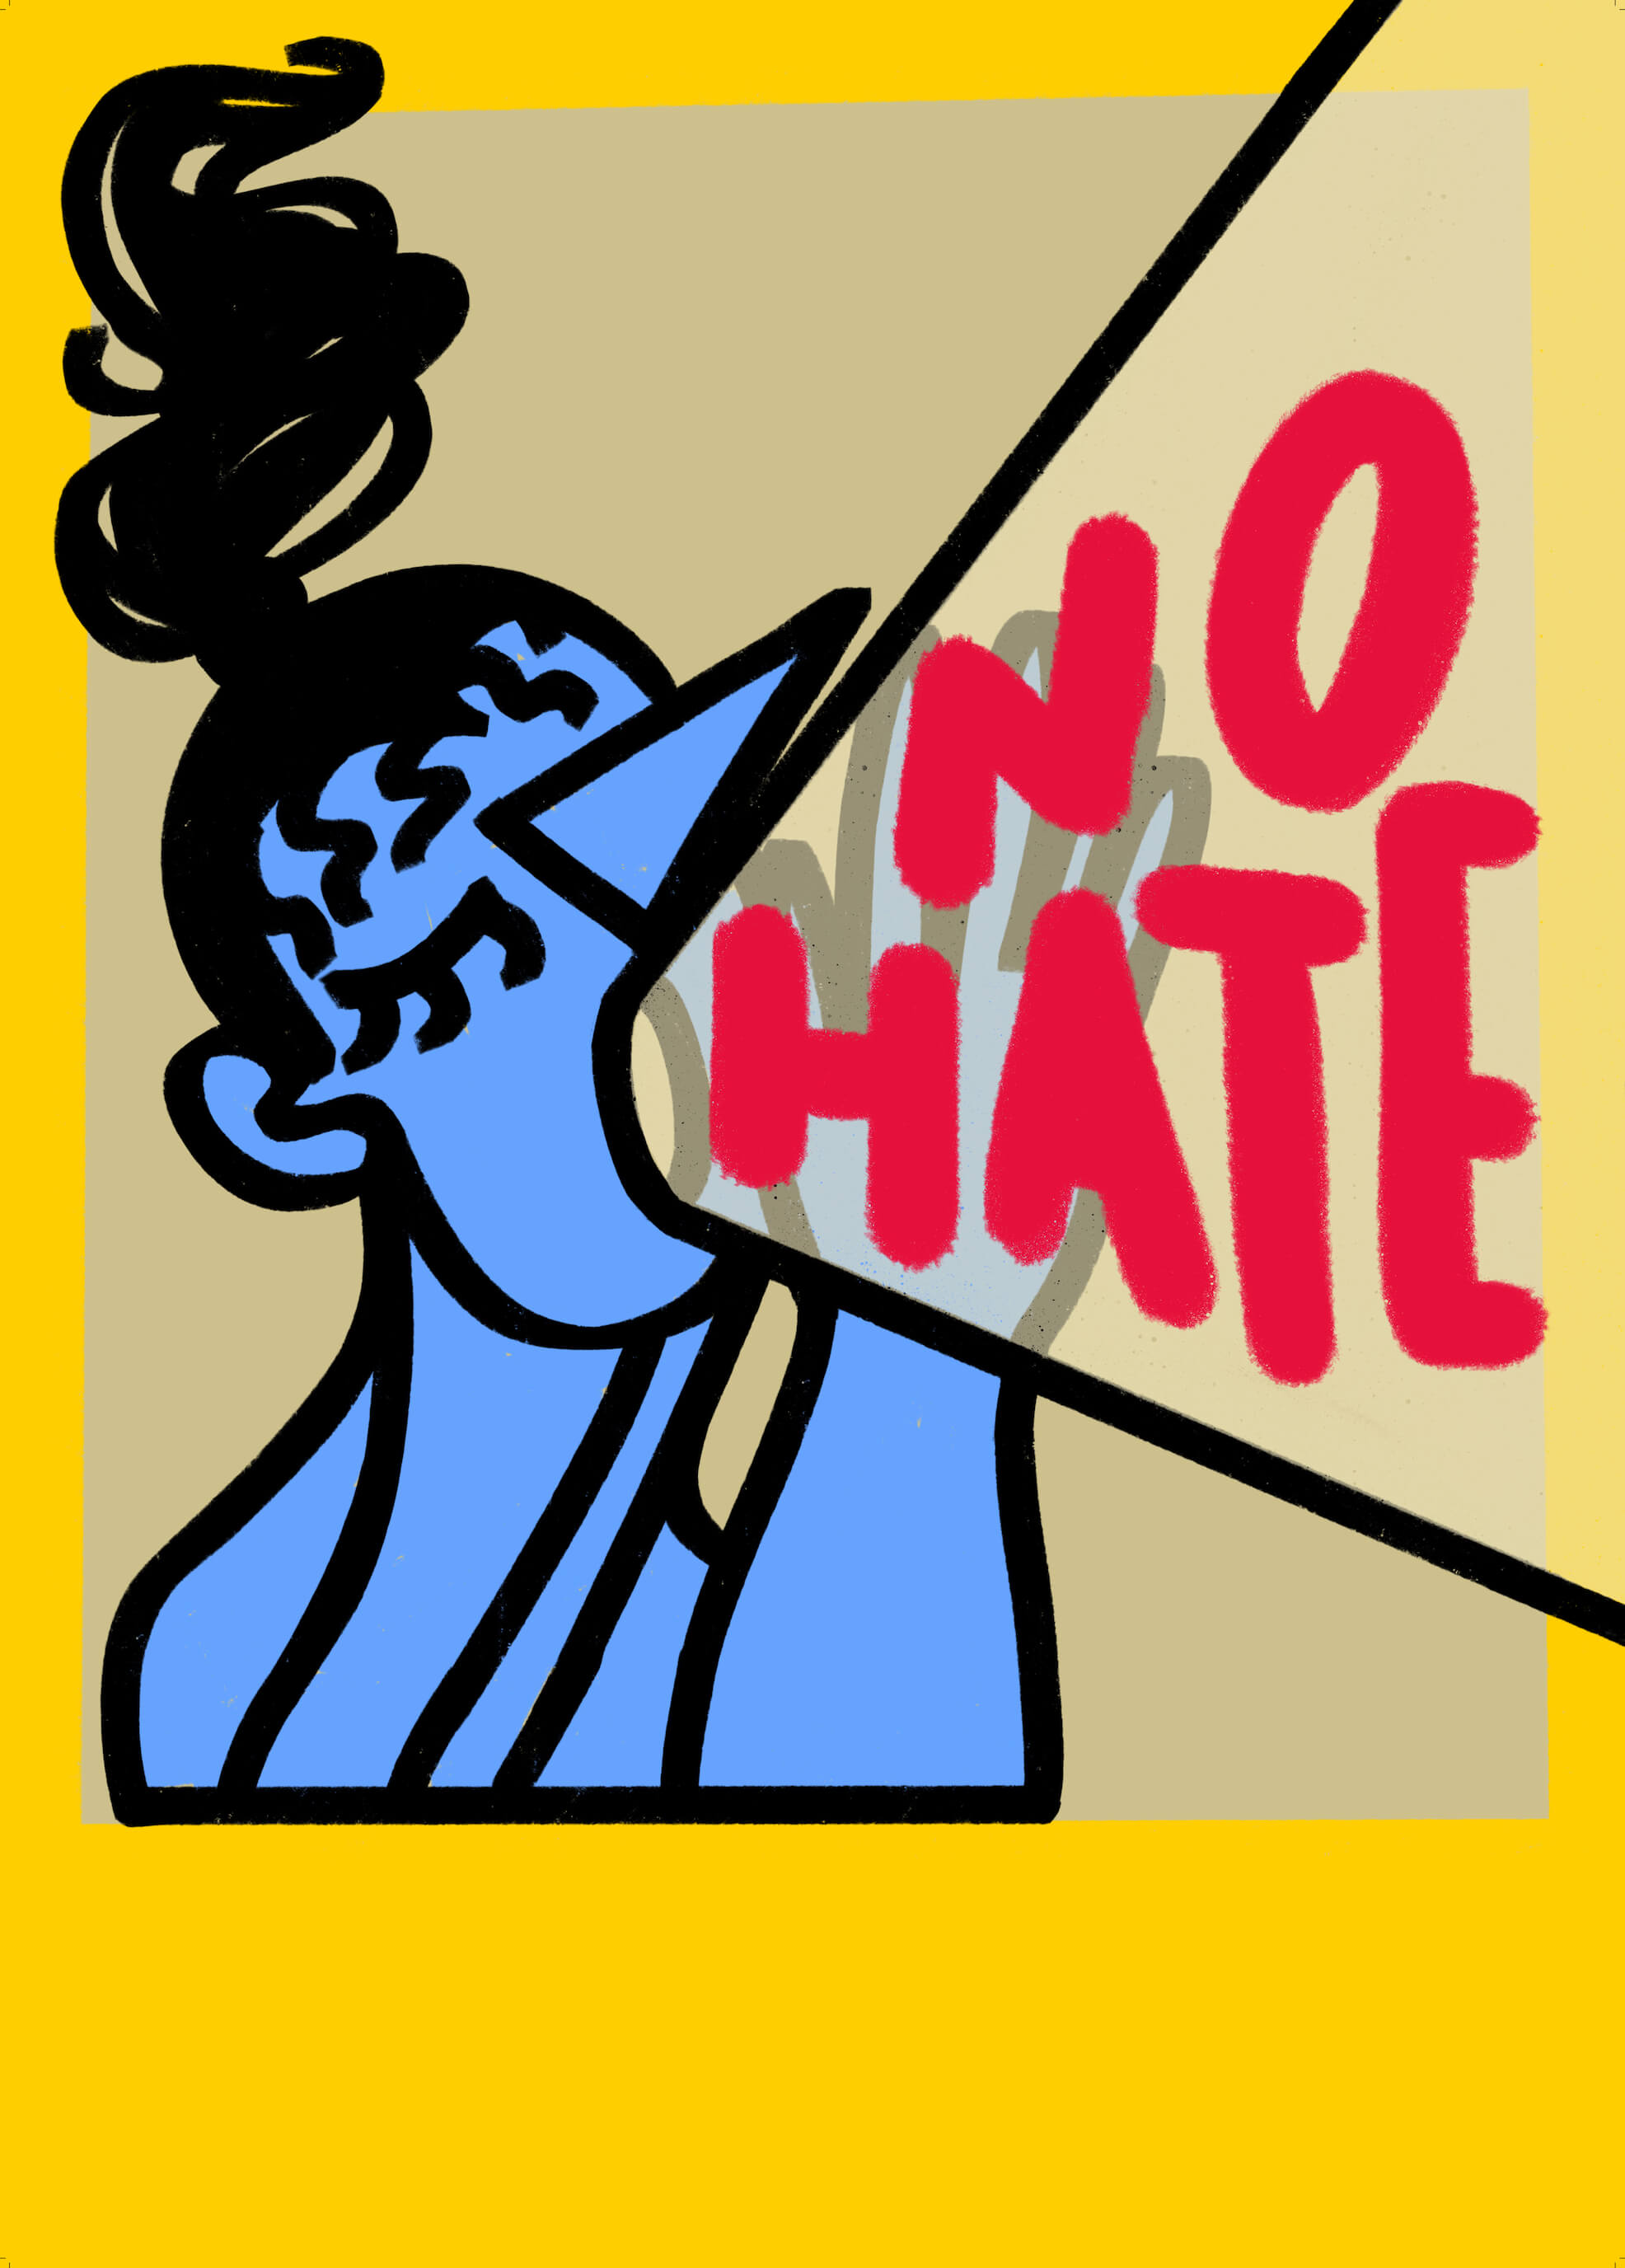 No Hate (color series) main image